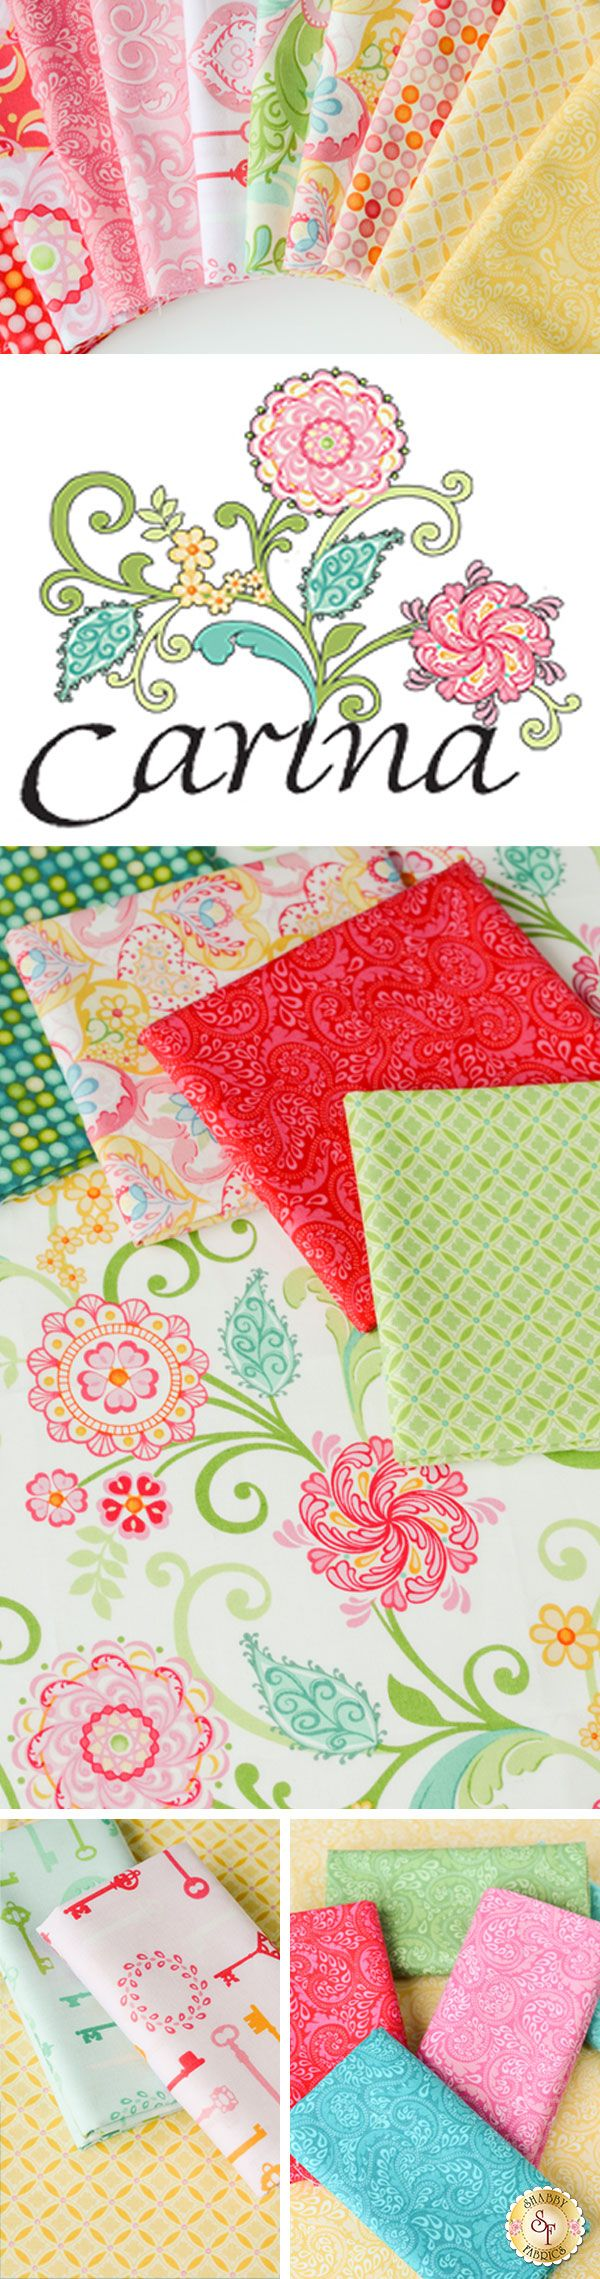 Carina by Amanda Murphy for Benartex Fabrics is a floral fabric collection available at Shabby Fabrics